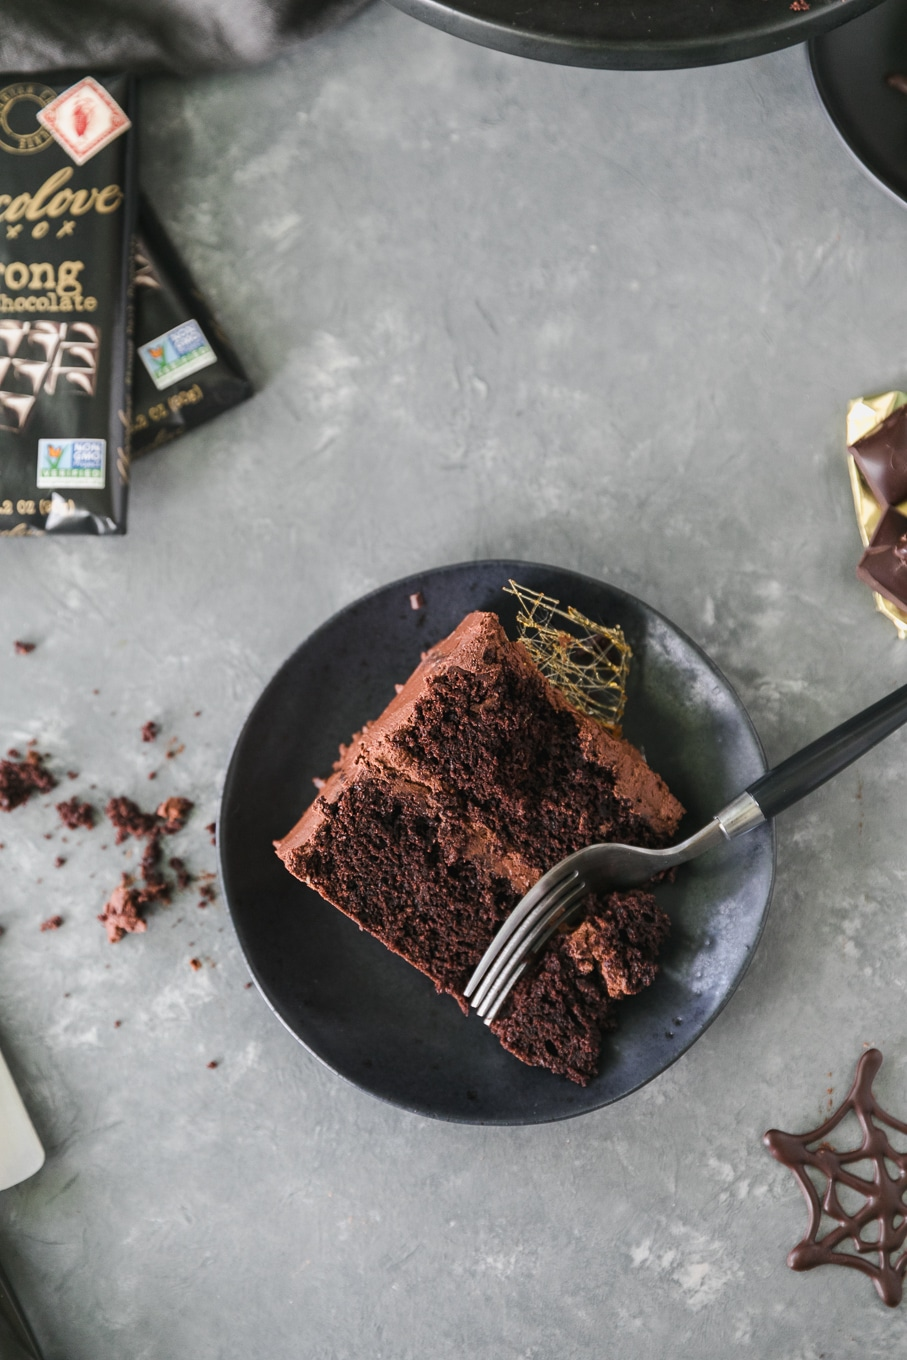 Overhead shot of a piece of chocolate cake on a black plate with a fork taking a bite out of it